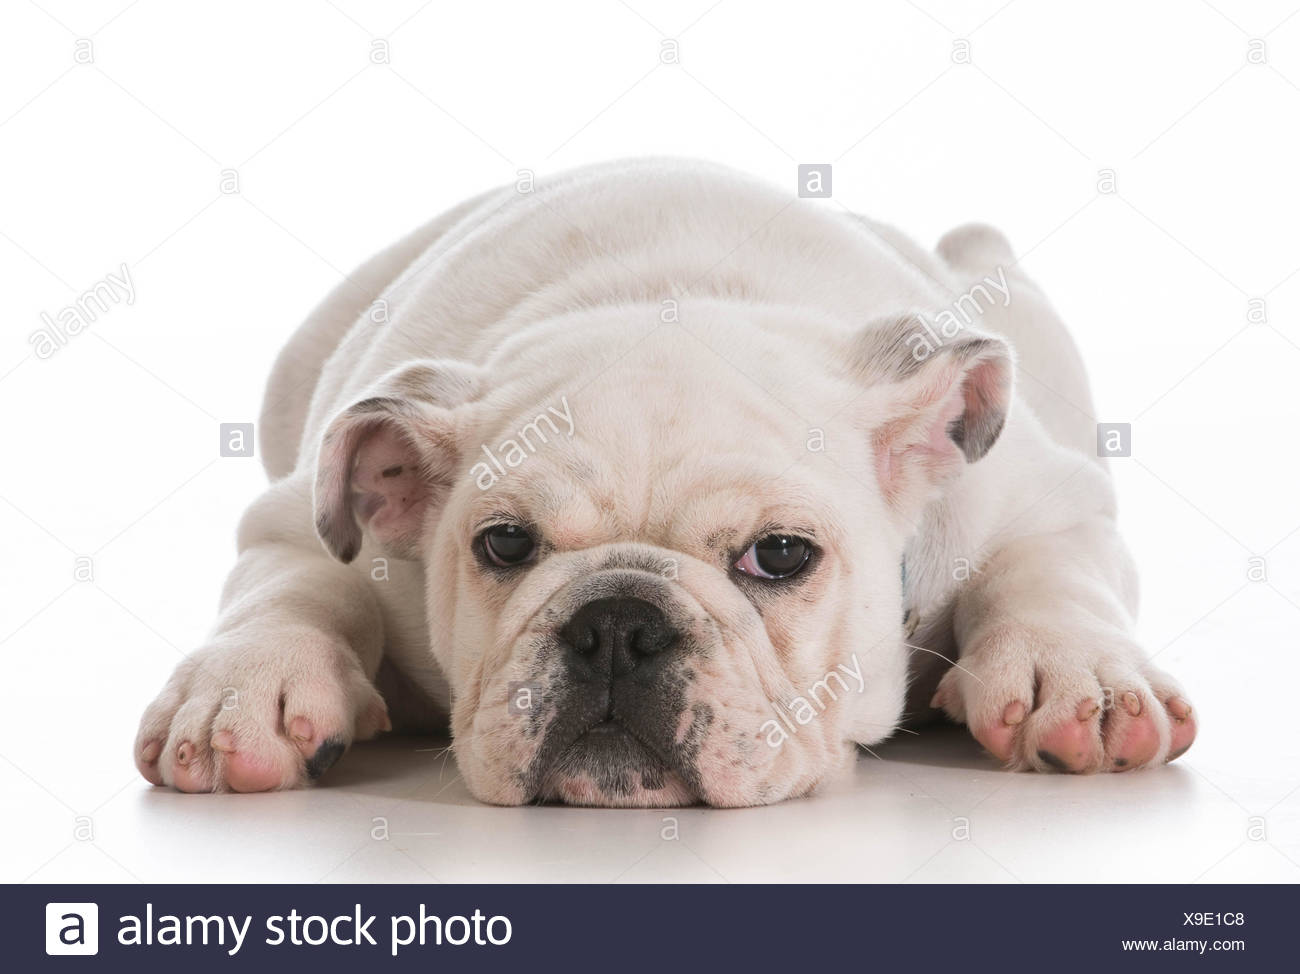 tired english bulldog puppy laying down stretched out on